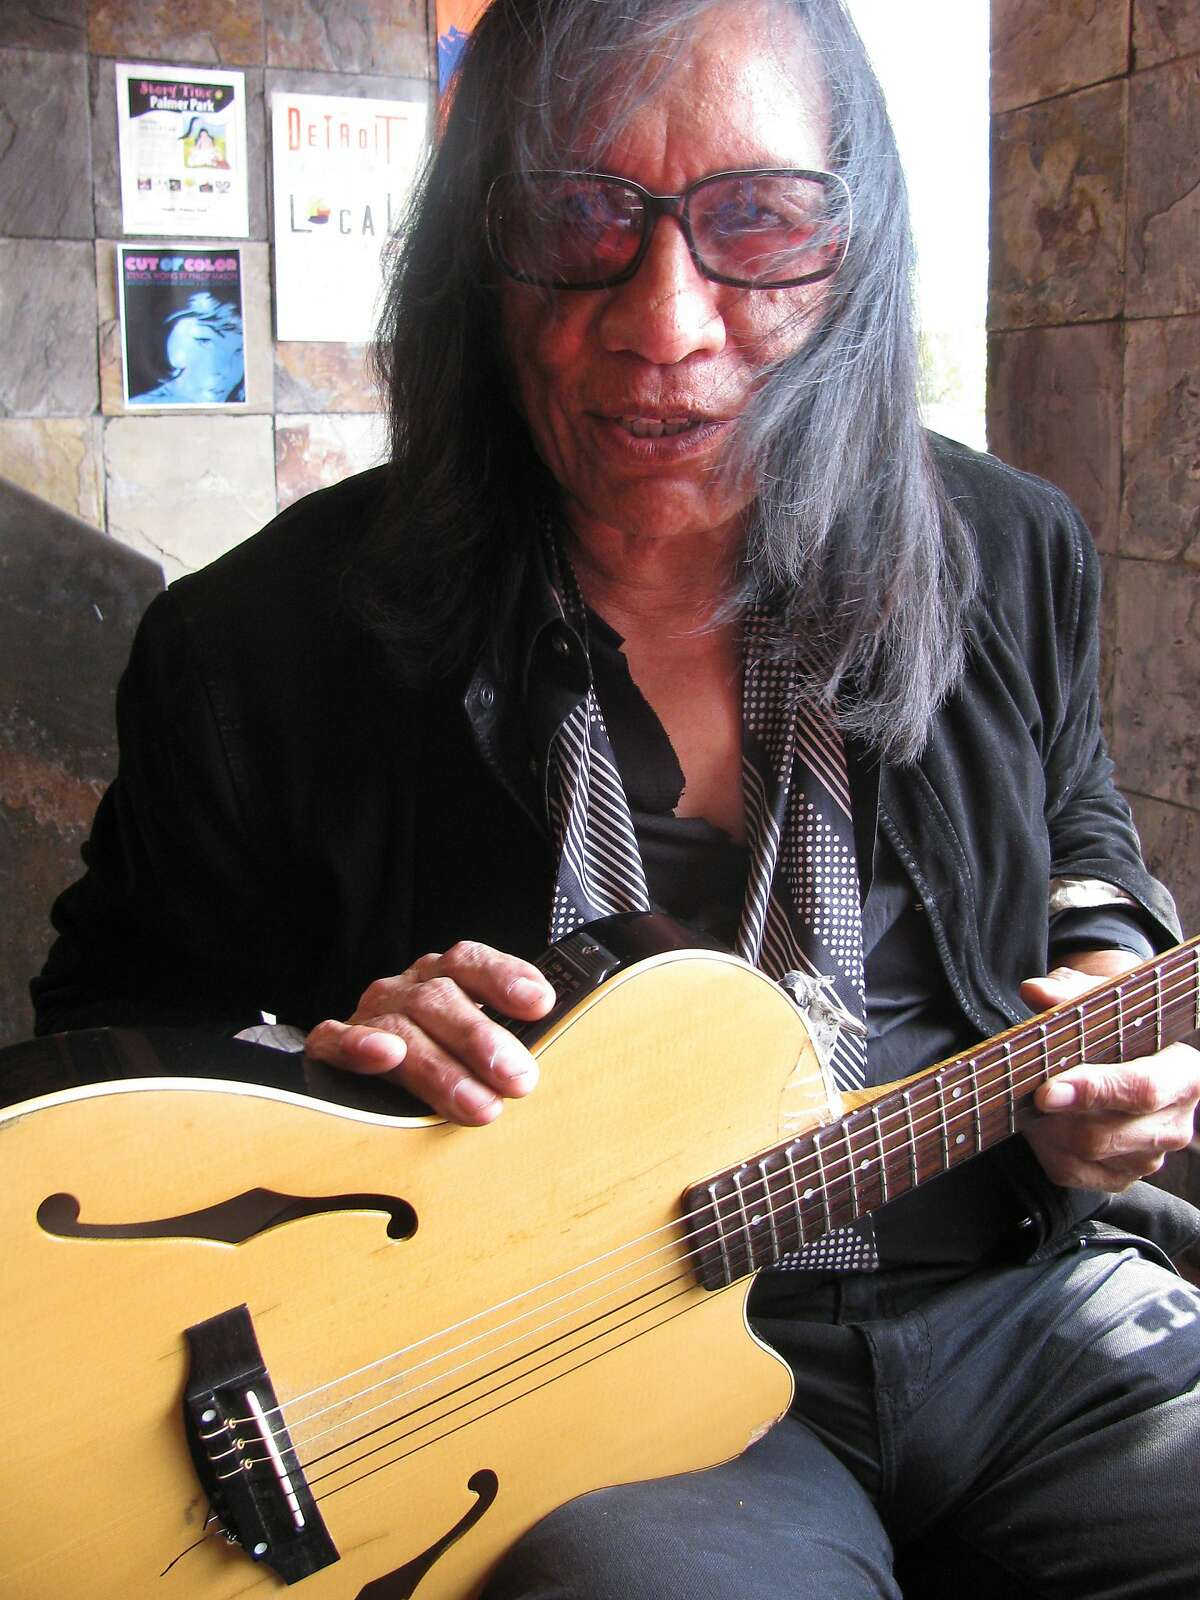 In an Aug. 21, 2012 photo, Sixto Rodriguez is seen in Detroit. An Oscar-nominated documentary about the Detroit musician whose albums flopped in the U.S. but which unknown to him were megahits in South Africa, has made him wonder what happened to all the royalties from those sales. (AP Photo/Jeff Karoub)